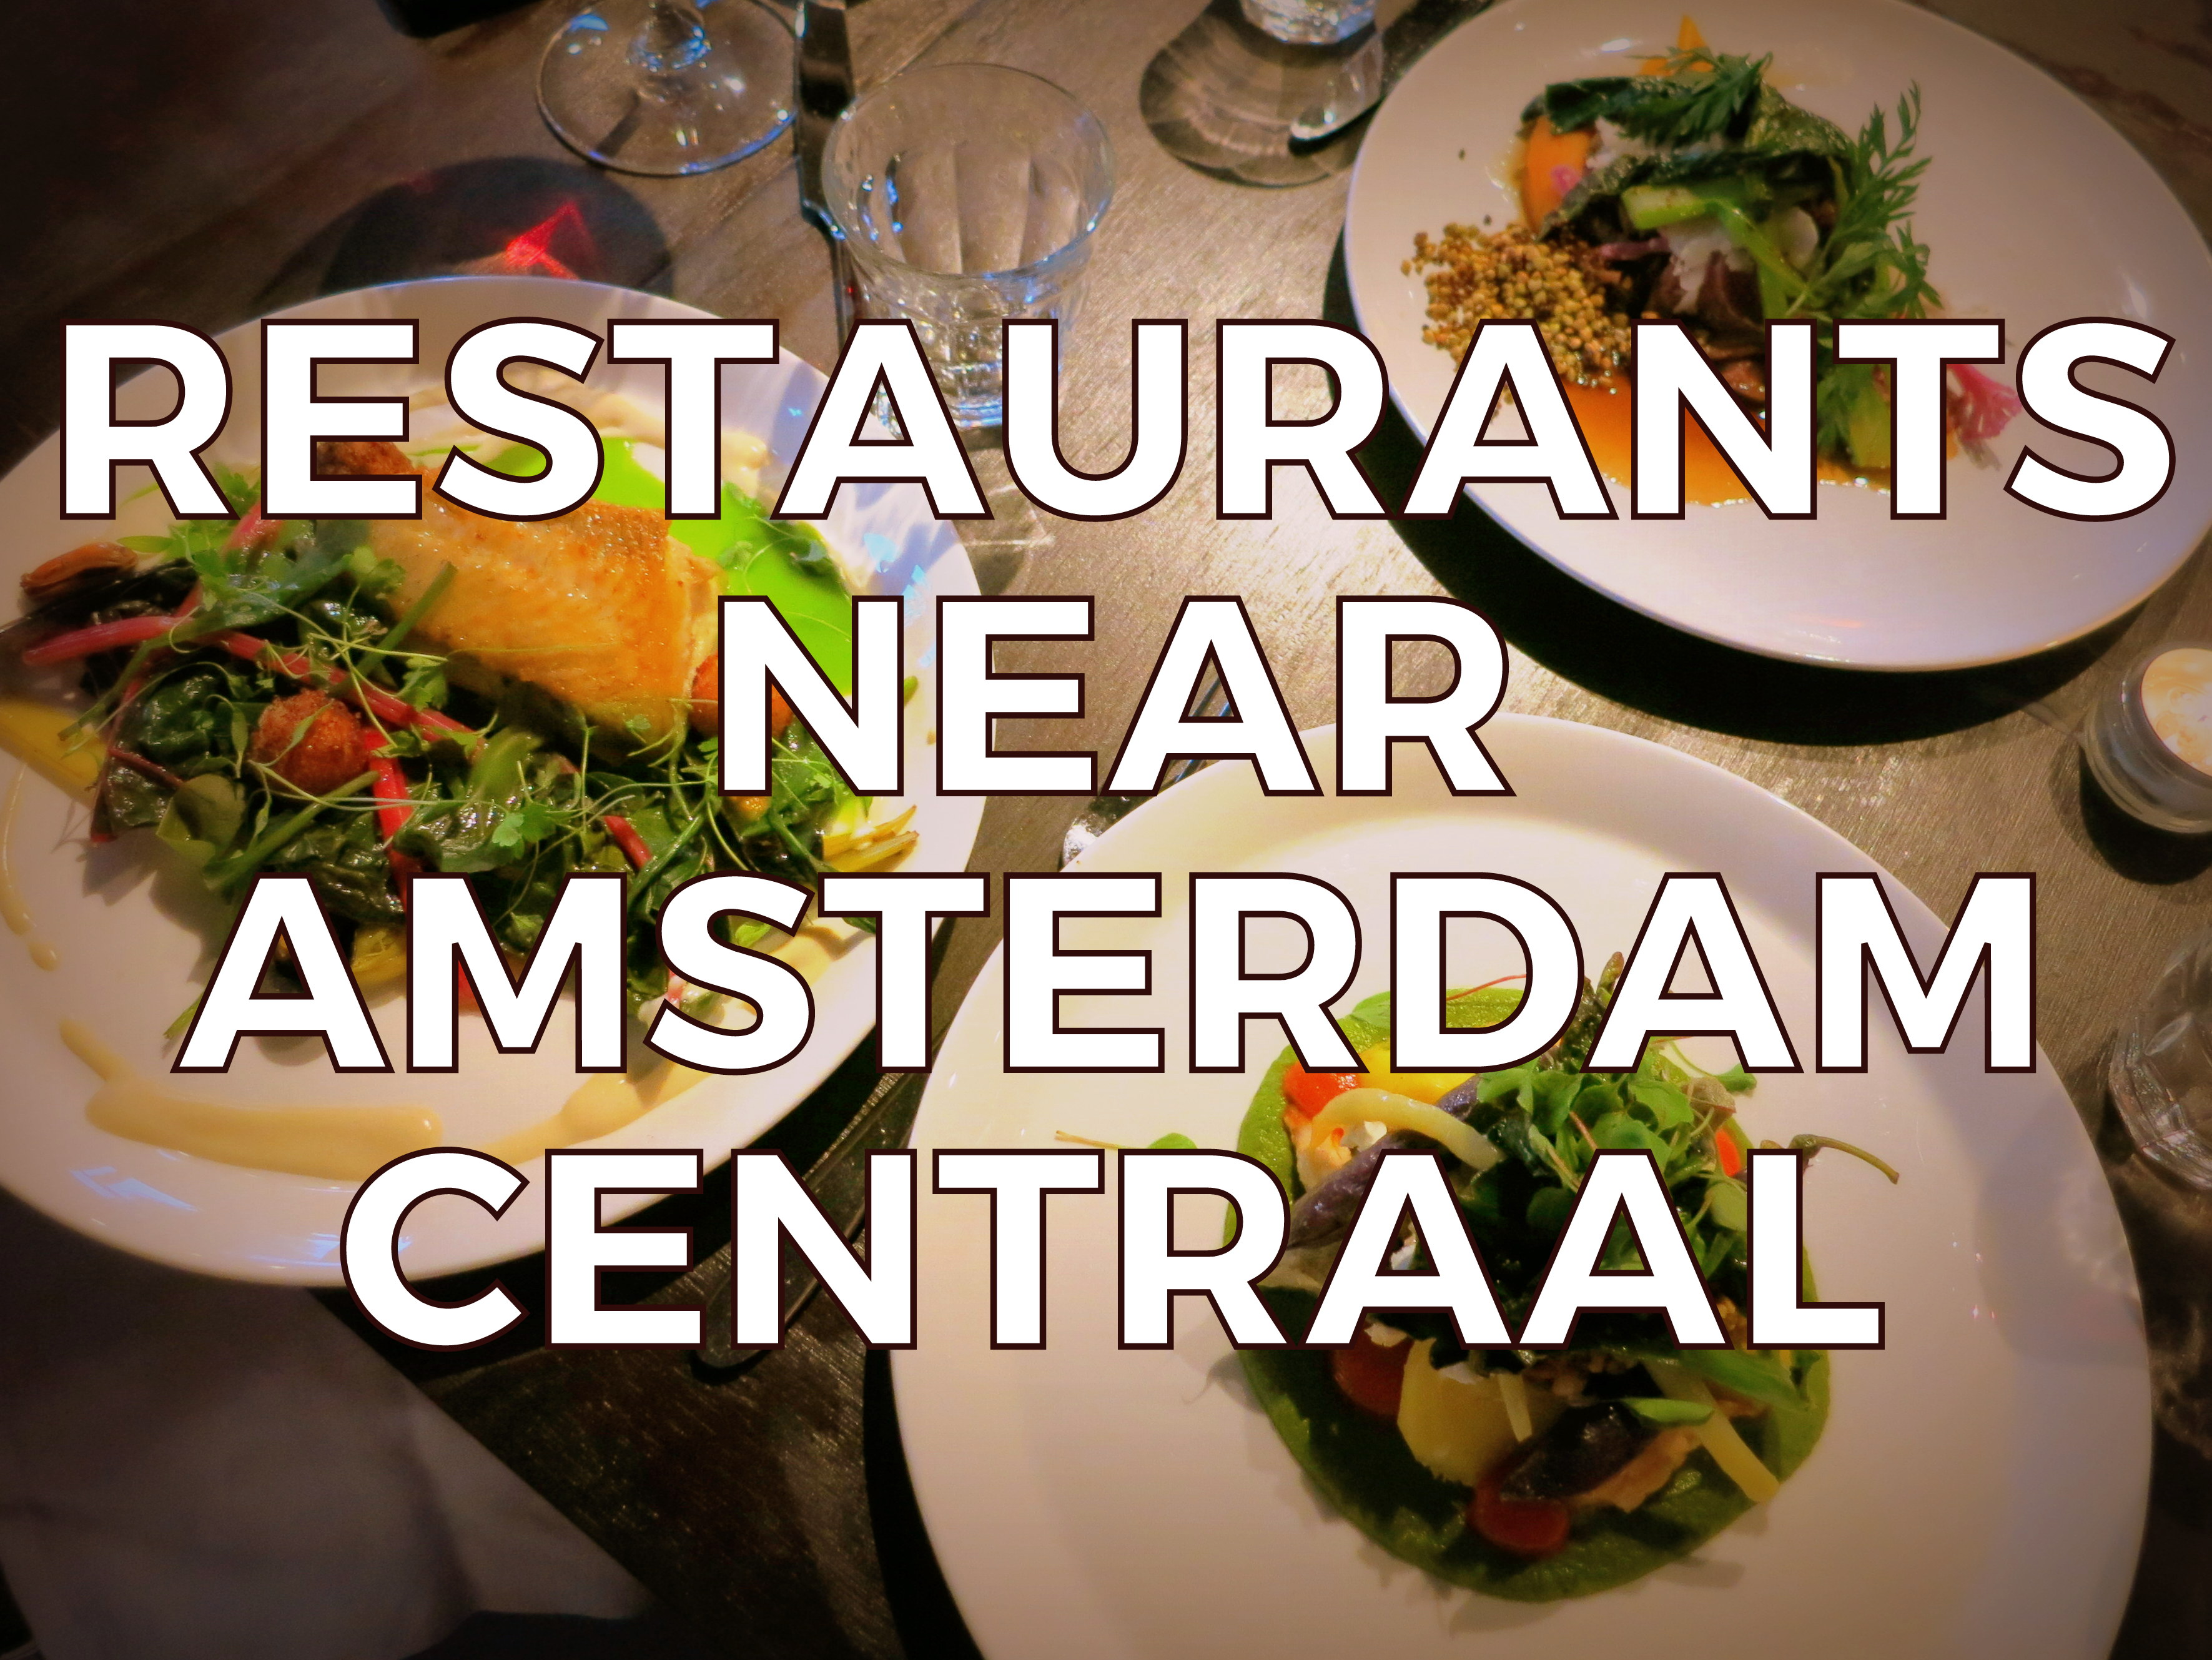 Looking place to eat near Amsterdam Central Station? Here are five terrific restaurants just a few minutes from the central train station, plus a bonus rooftop lounge.